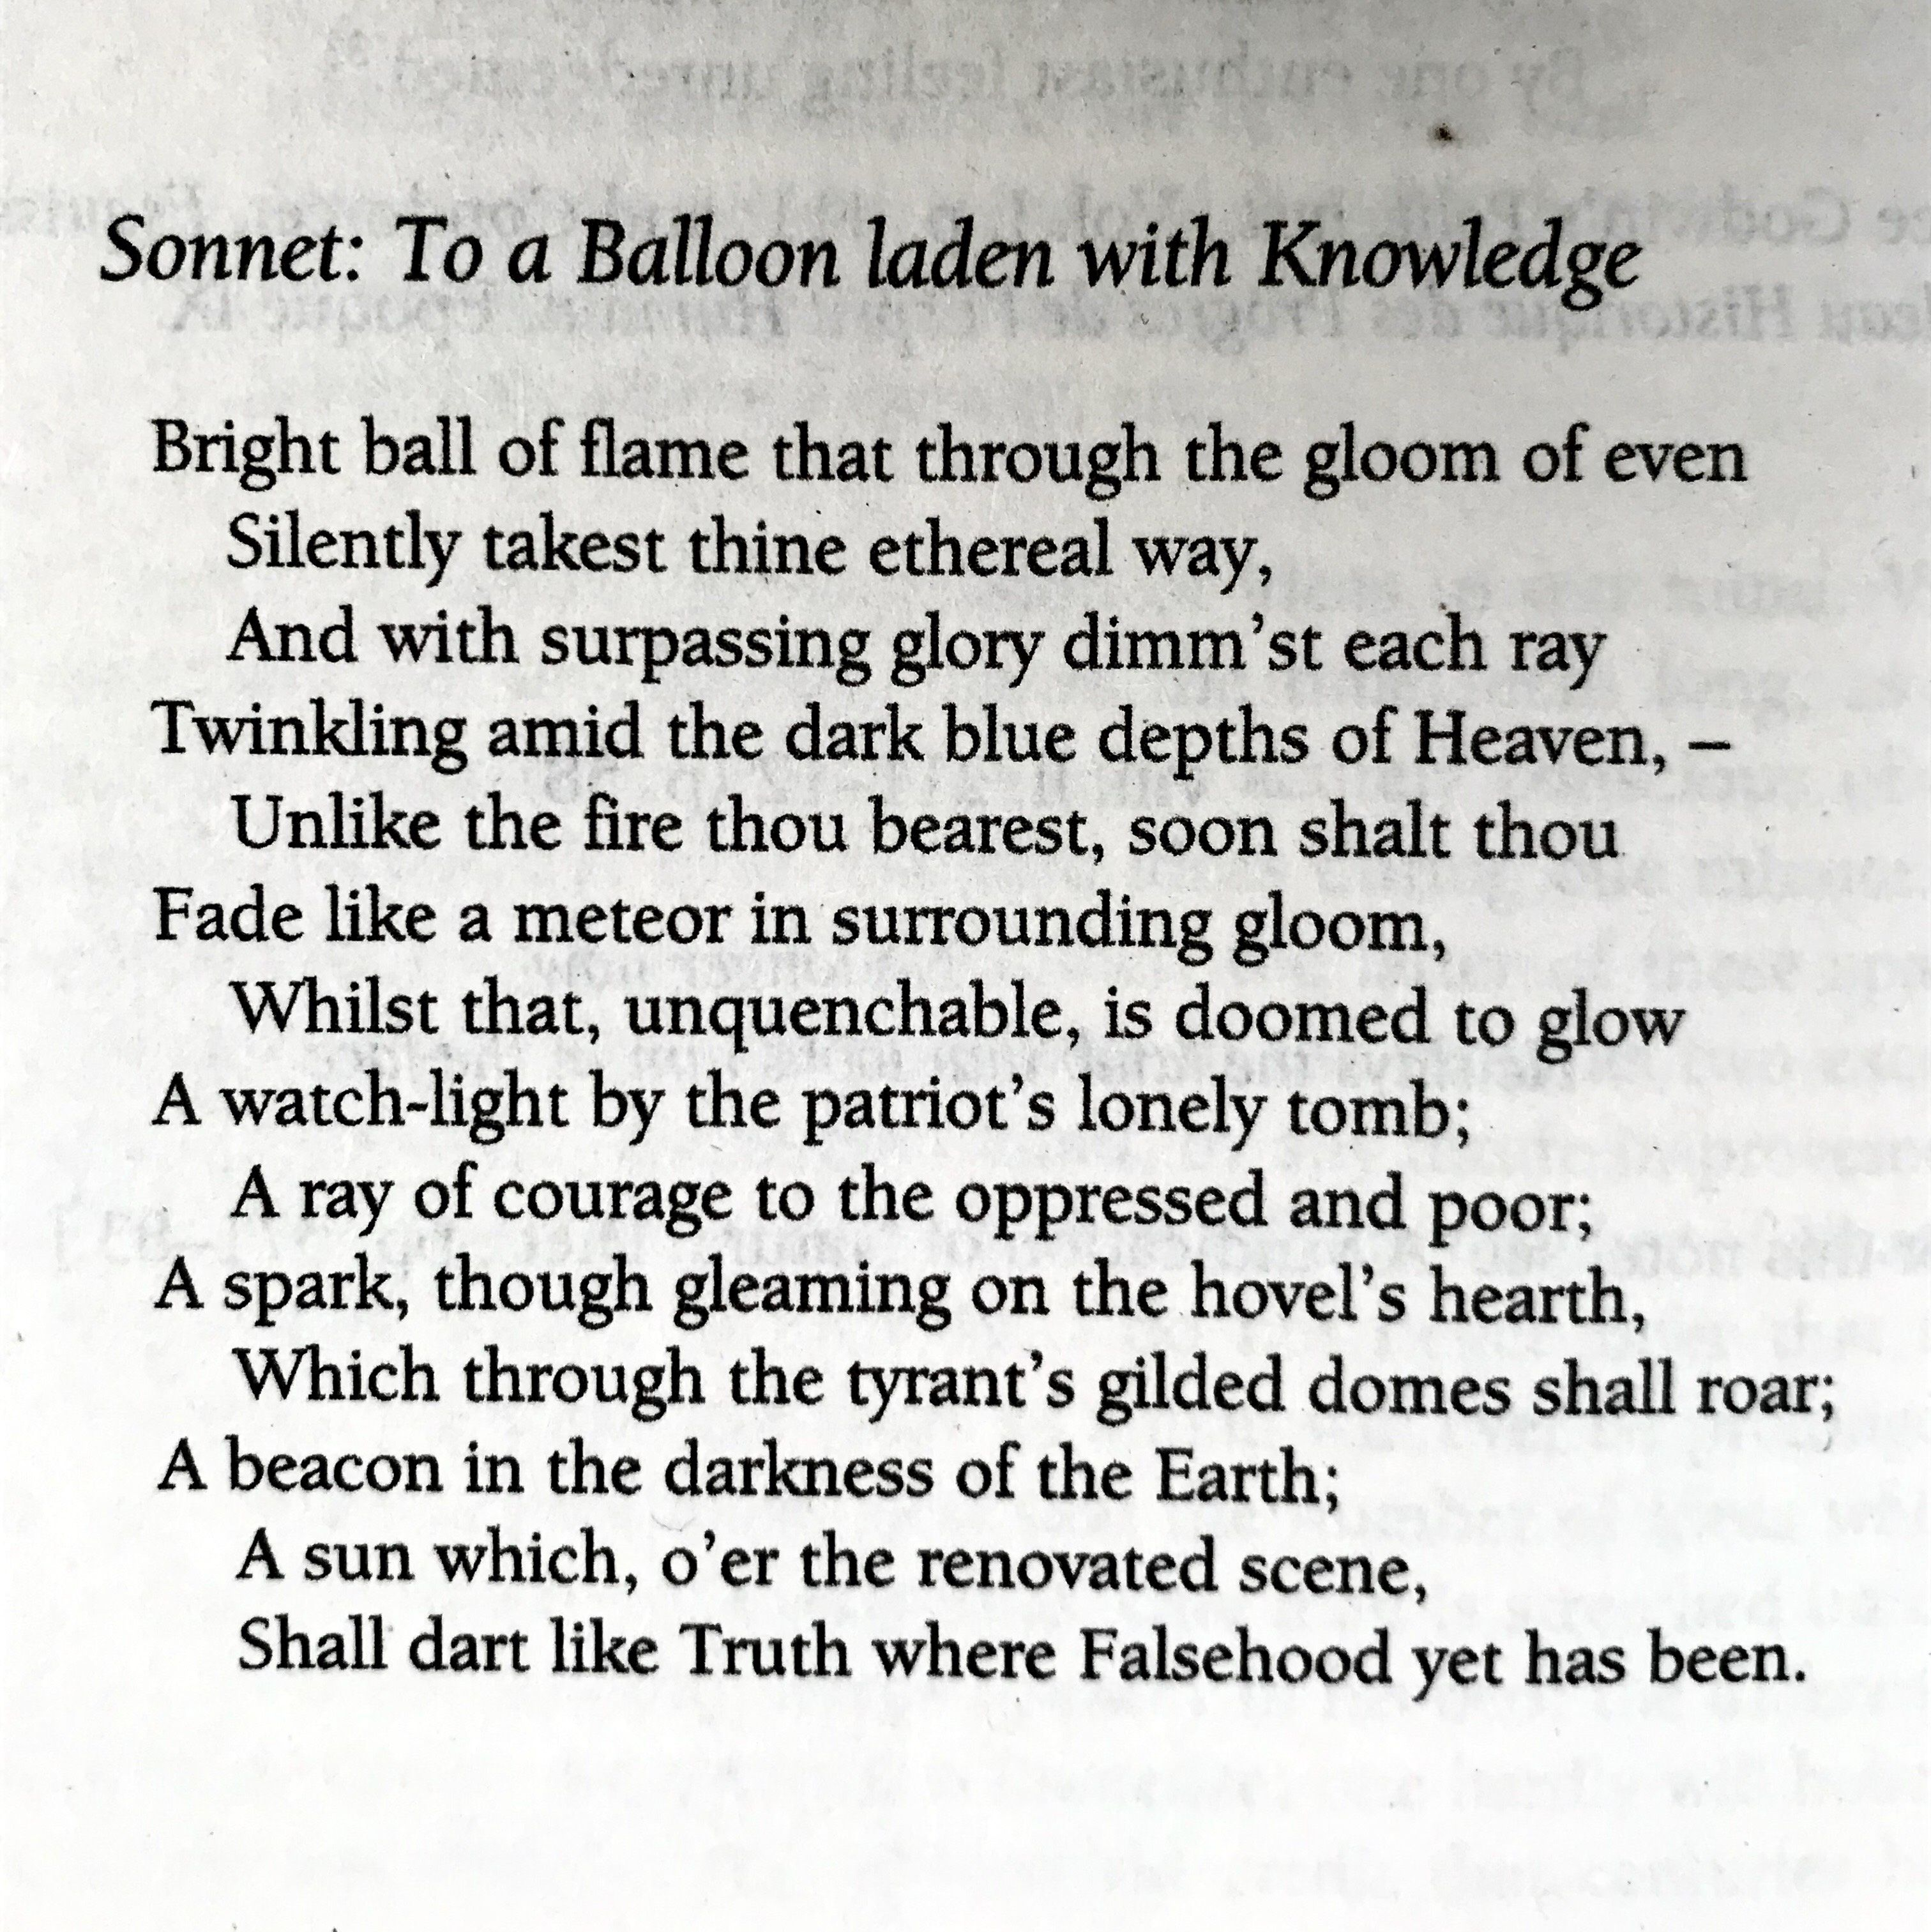 Percy Bysshe Shelley Sonnet To A Balloon Laden With Knowledge Reference The Selected Poem Of Introduction And Note By Bruce W Poetry Words Summary Ozymandia